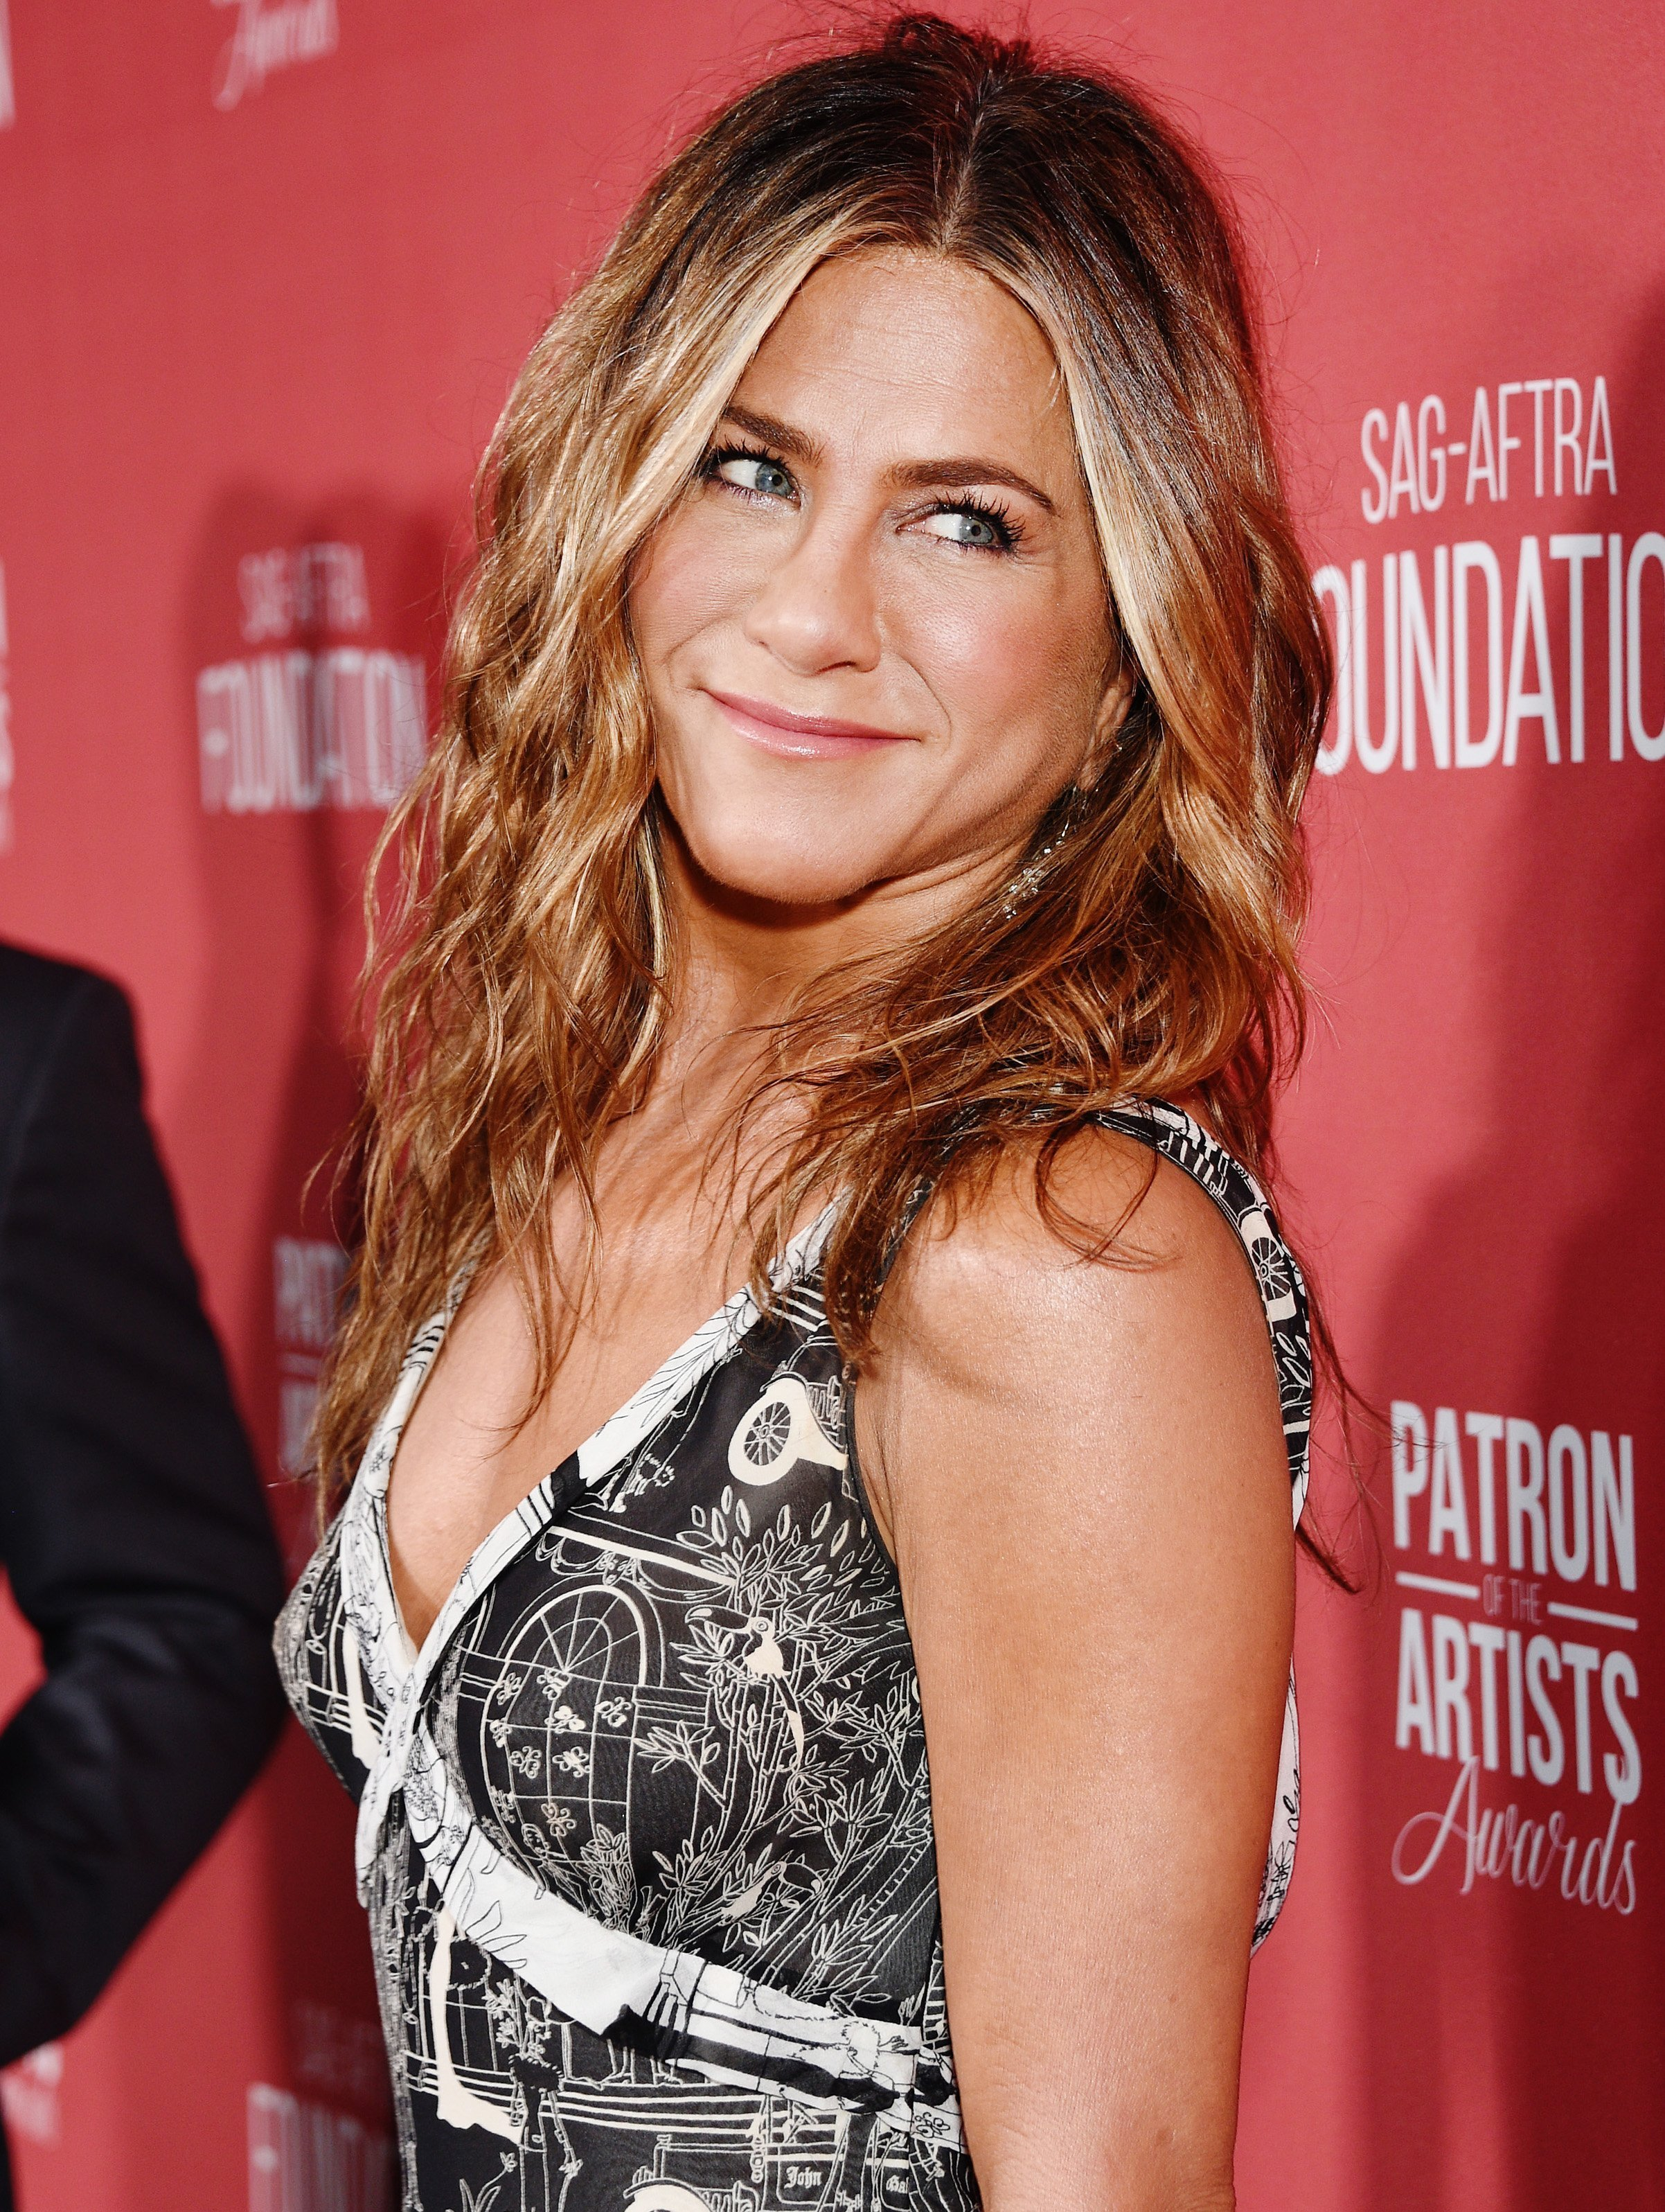 Jennifer Aniston attends SAG-AFTRA Foundation's 4th Annual Patron of the Artists Awards on November 07, 2019. | Source: Getty Images